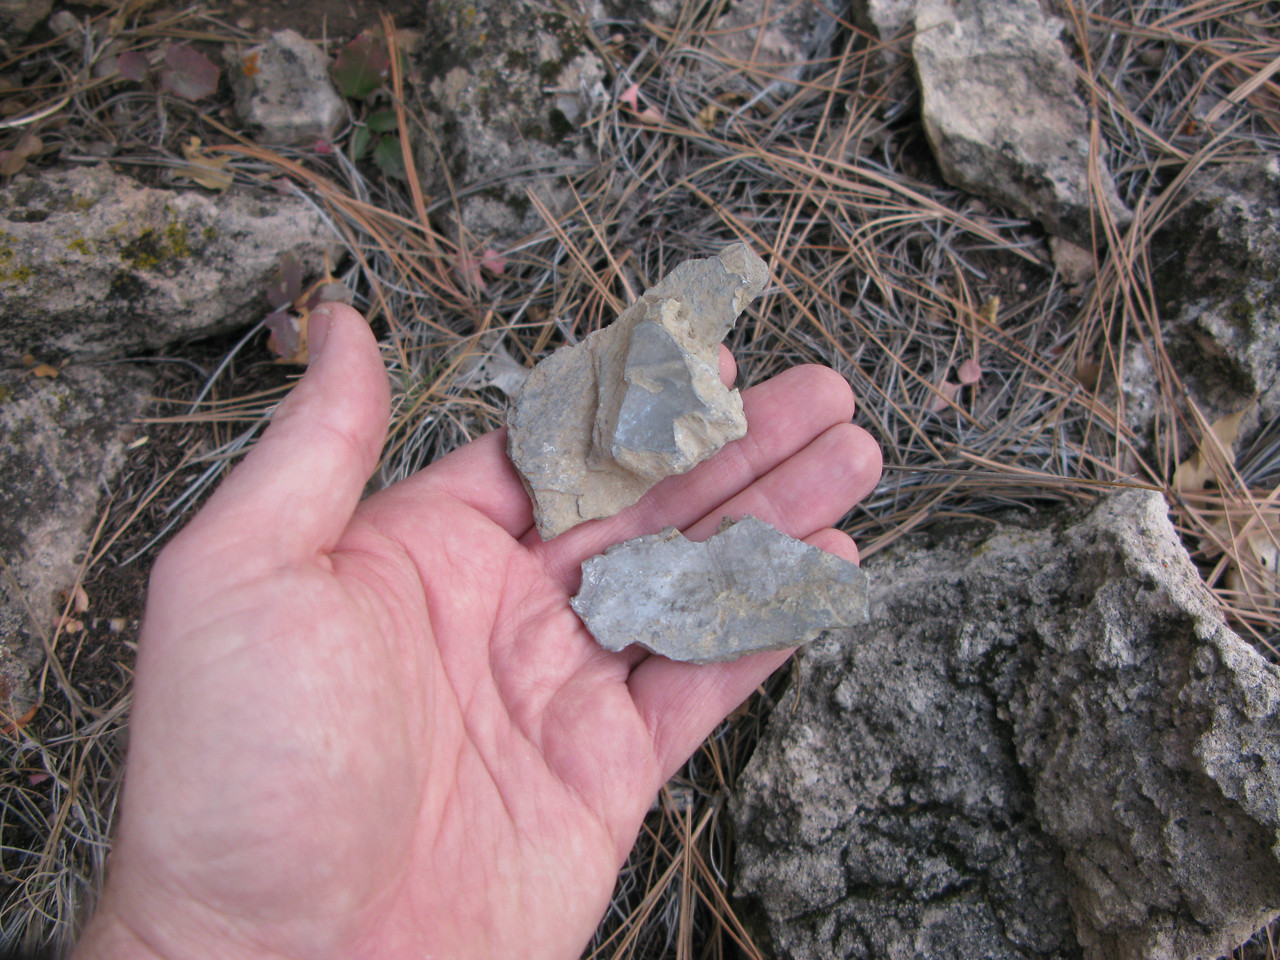 These two fragments look like the surrounding rocks, but they are actually pieces of the DC-3's left propeller blades that shattered when the left wing slammed into the cliff face. (Lostflights Photo)